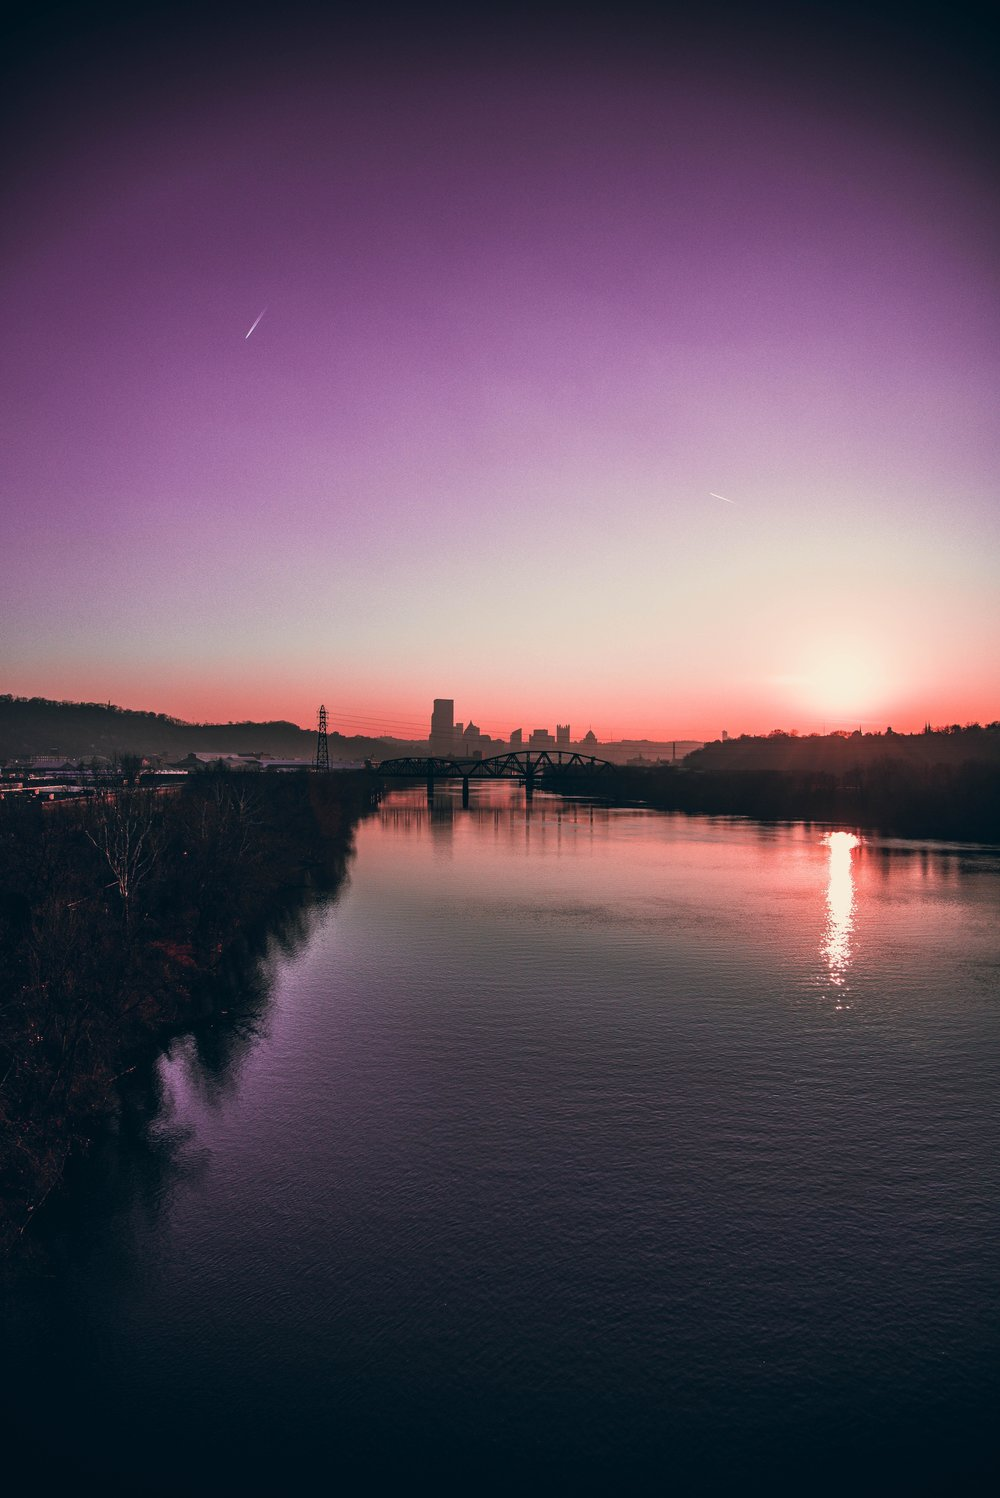 Sunset over downtown Pittsburgh, photo taken from 40th St. Bridge overlooking the Allegheny River.